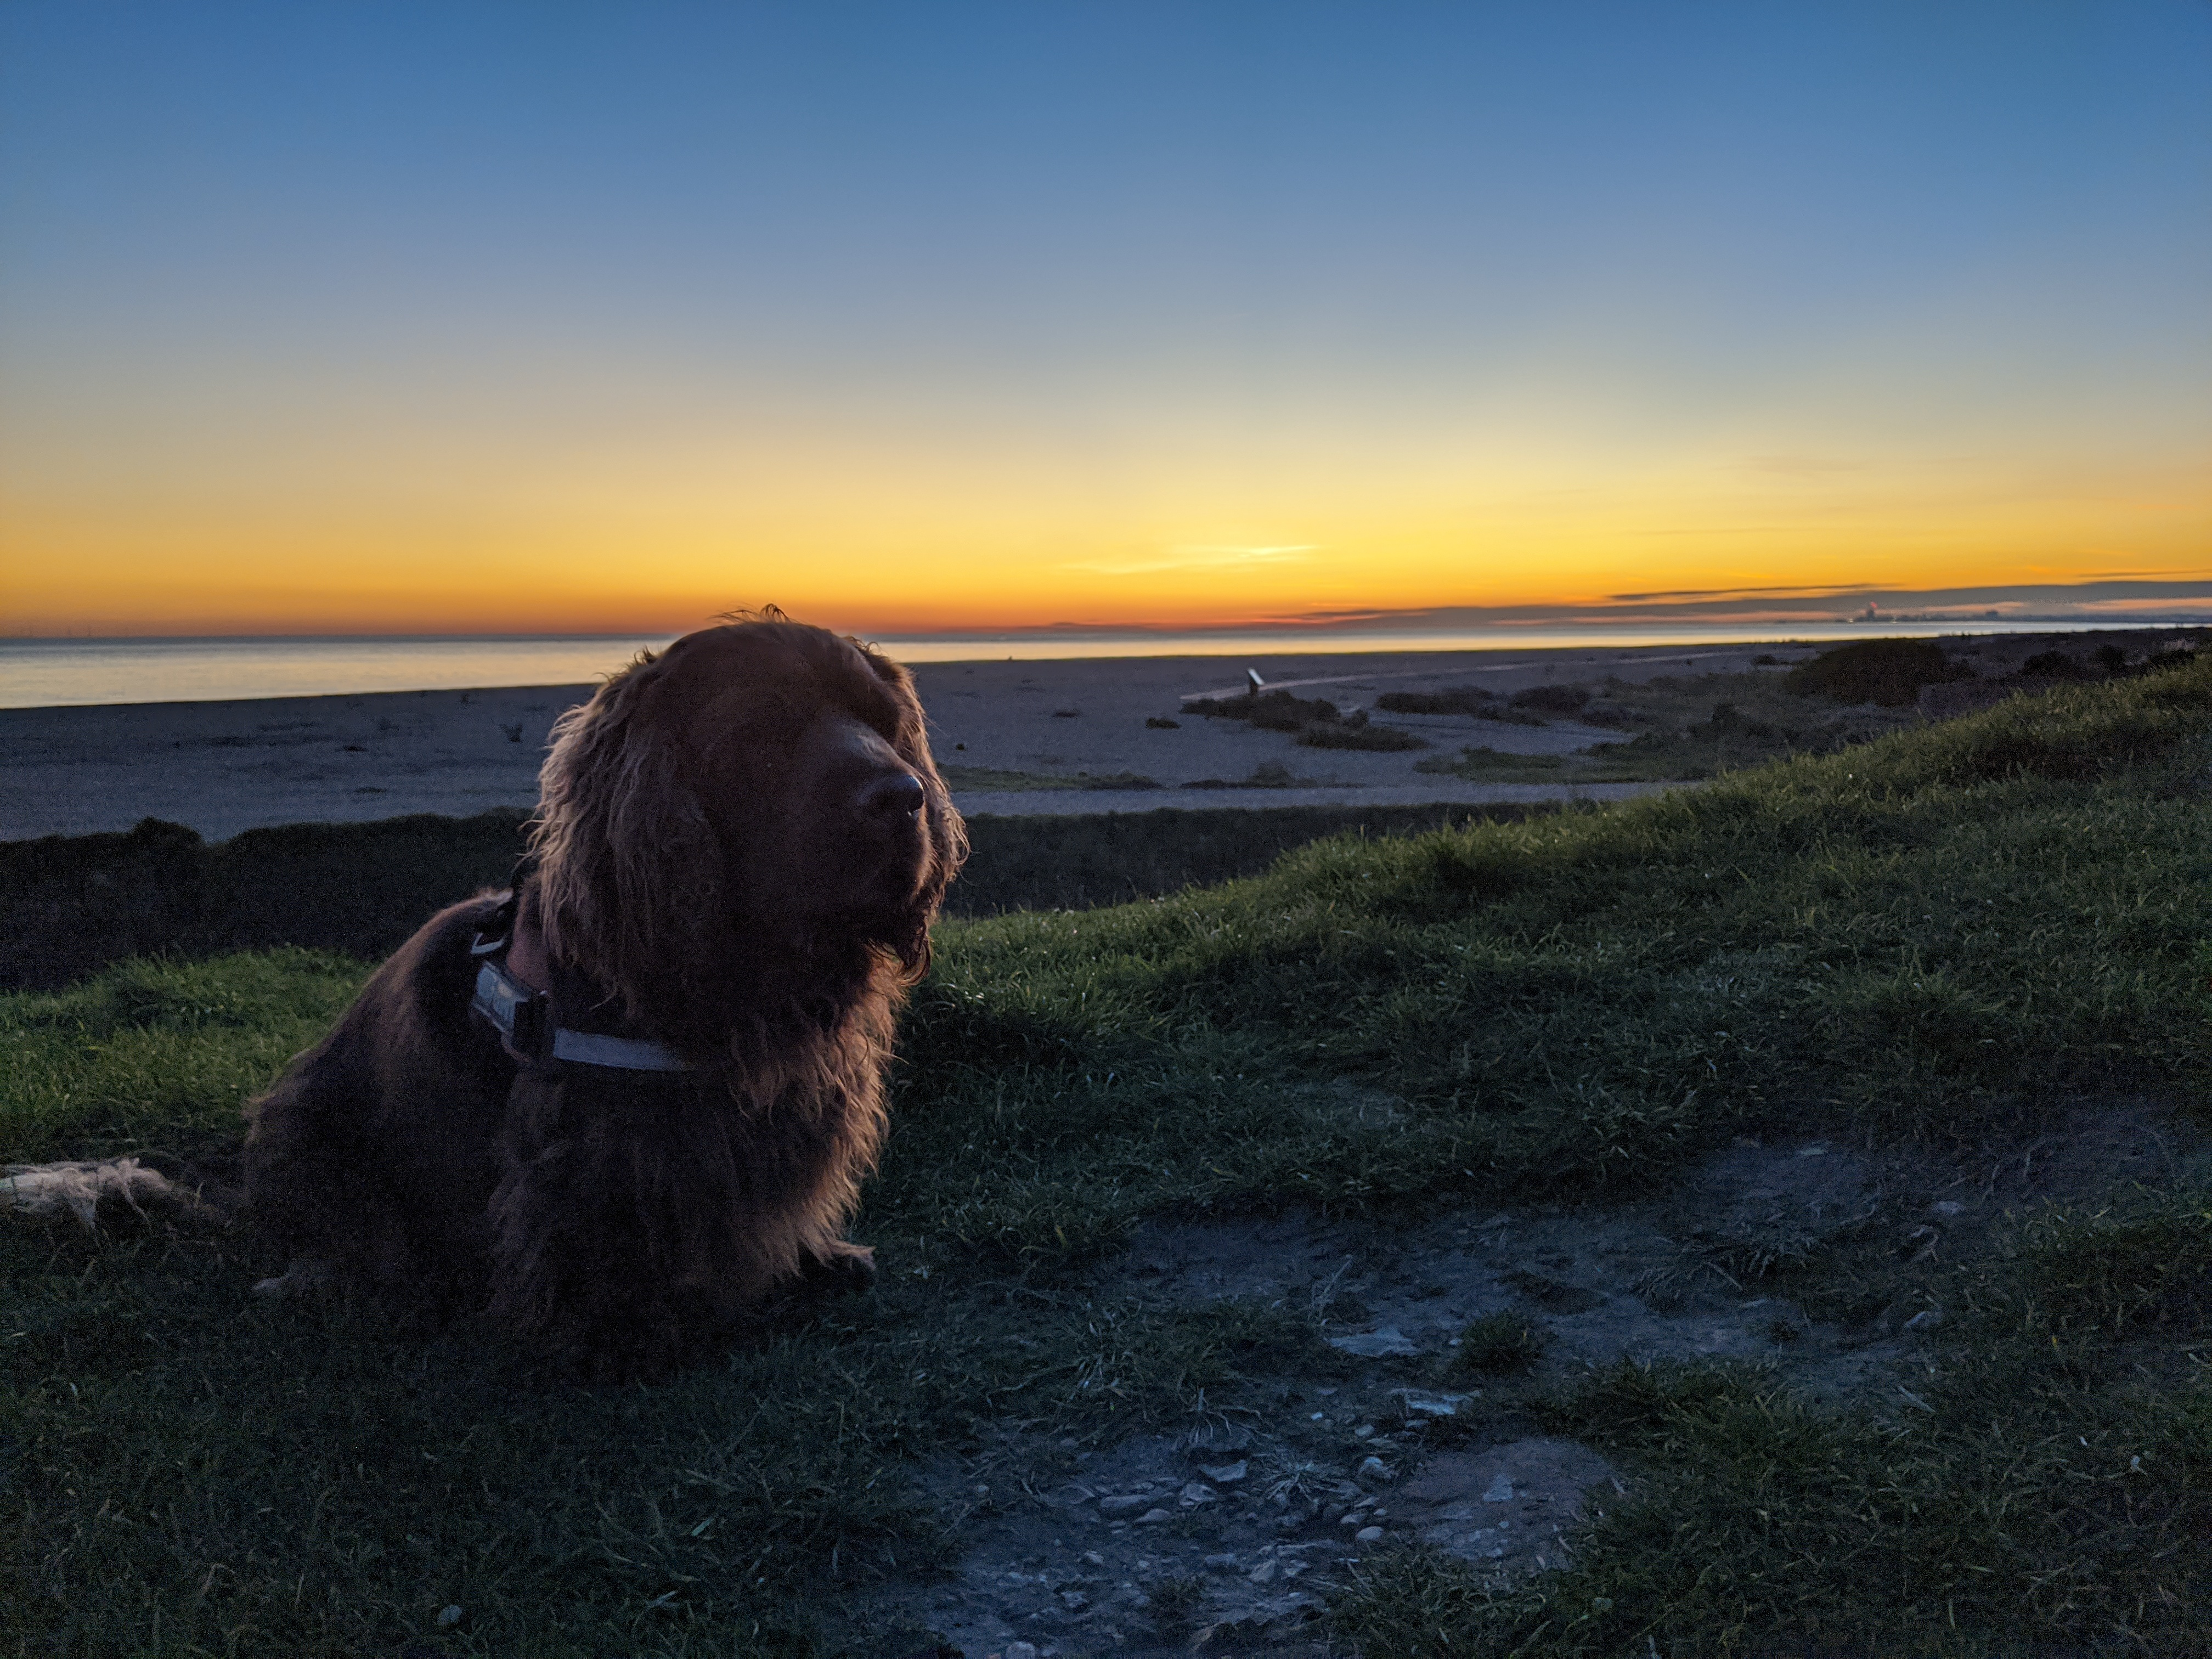 Sussex Spaniel sat on top of a hill with the sea and sunset in the background.